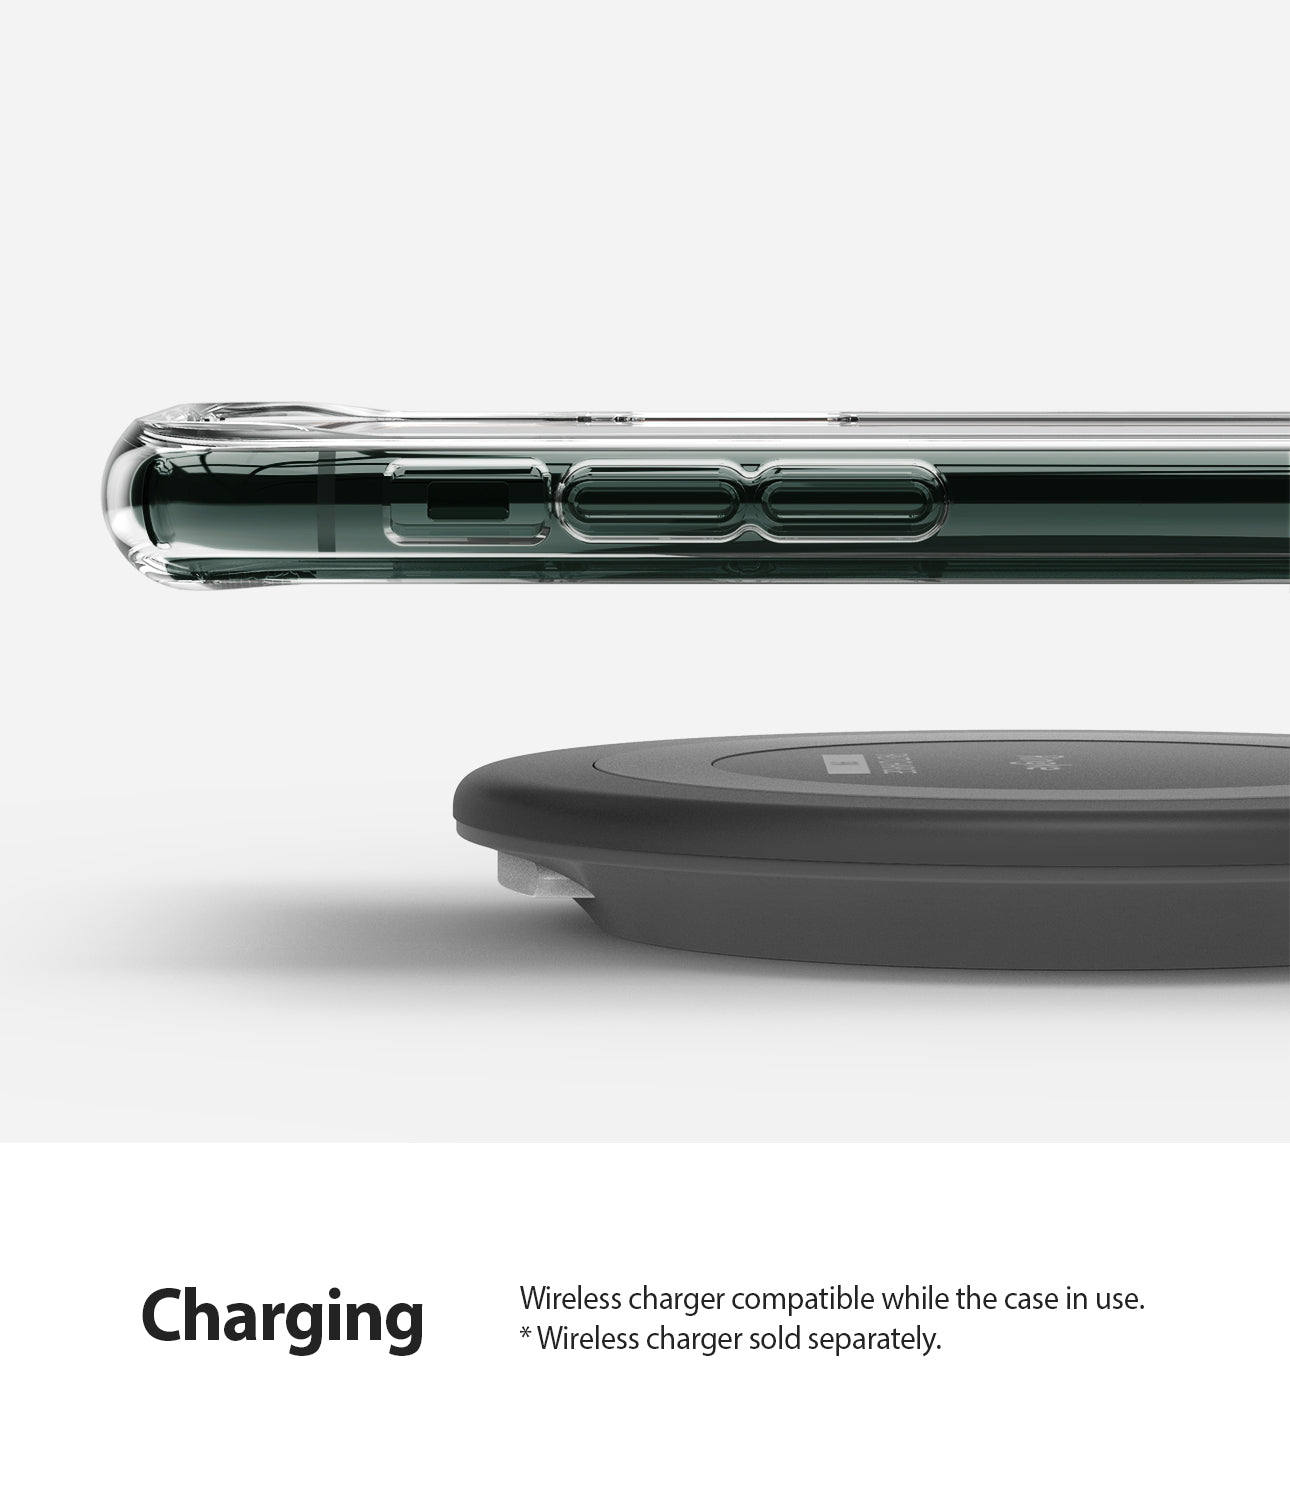 wireless charging compatible